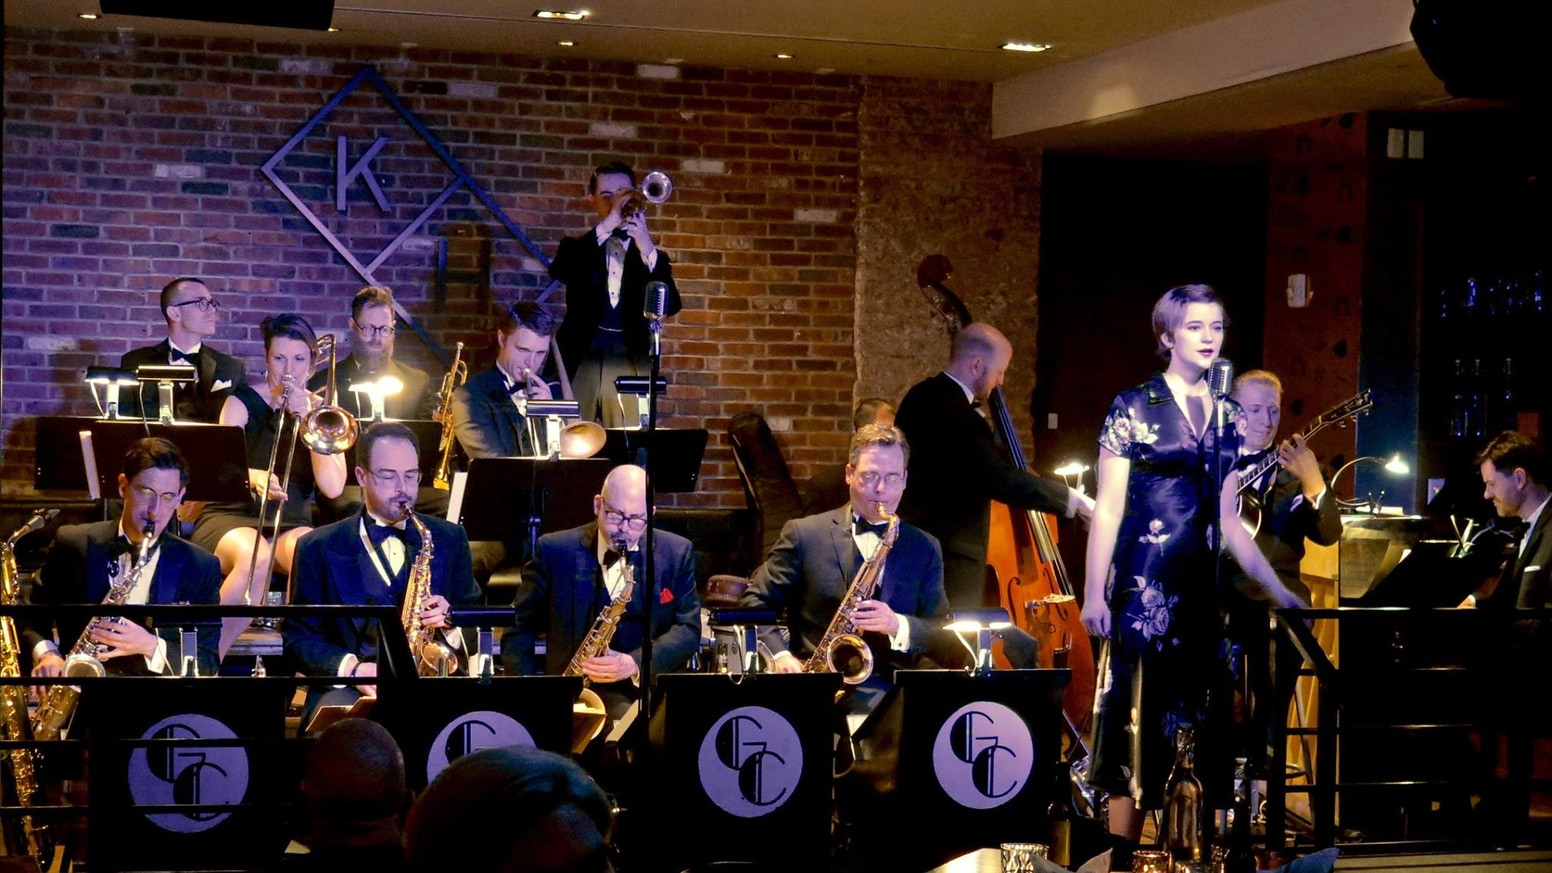 The G.C.O. is recording our first album in over 8 years: a two-disc big band album with both classic and original songs!